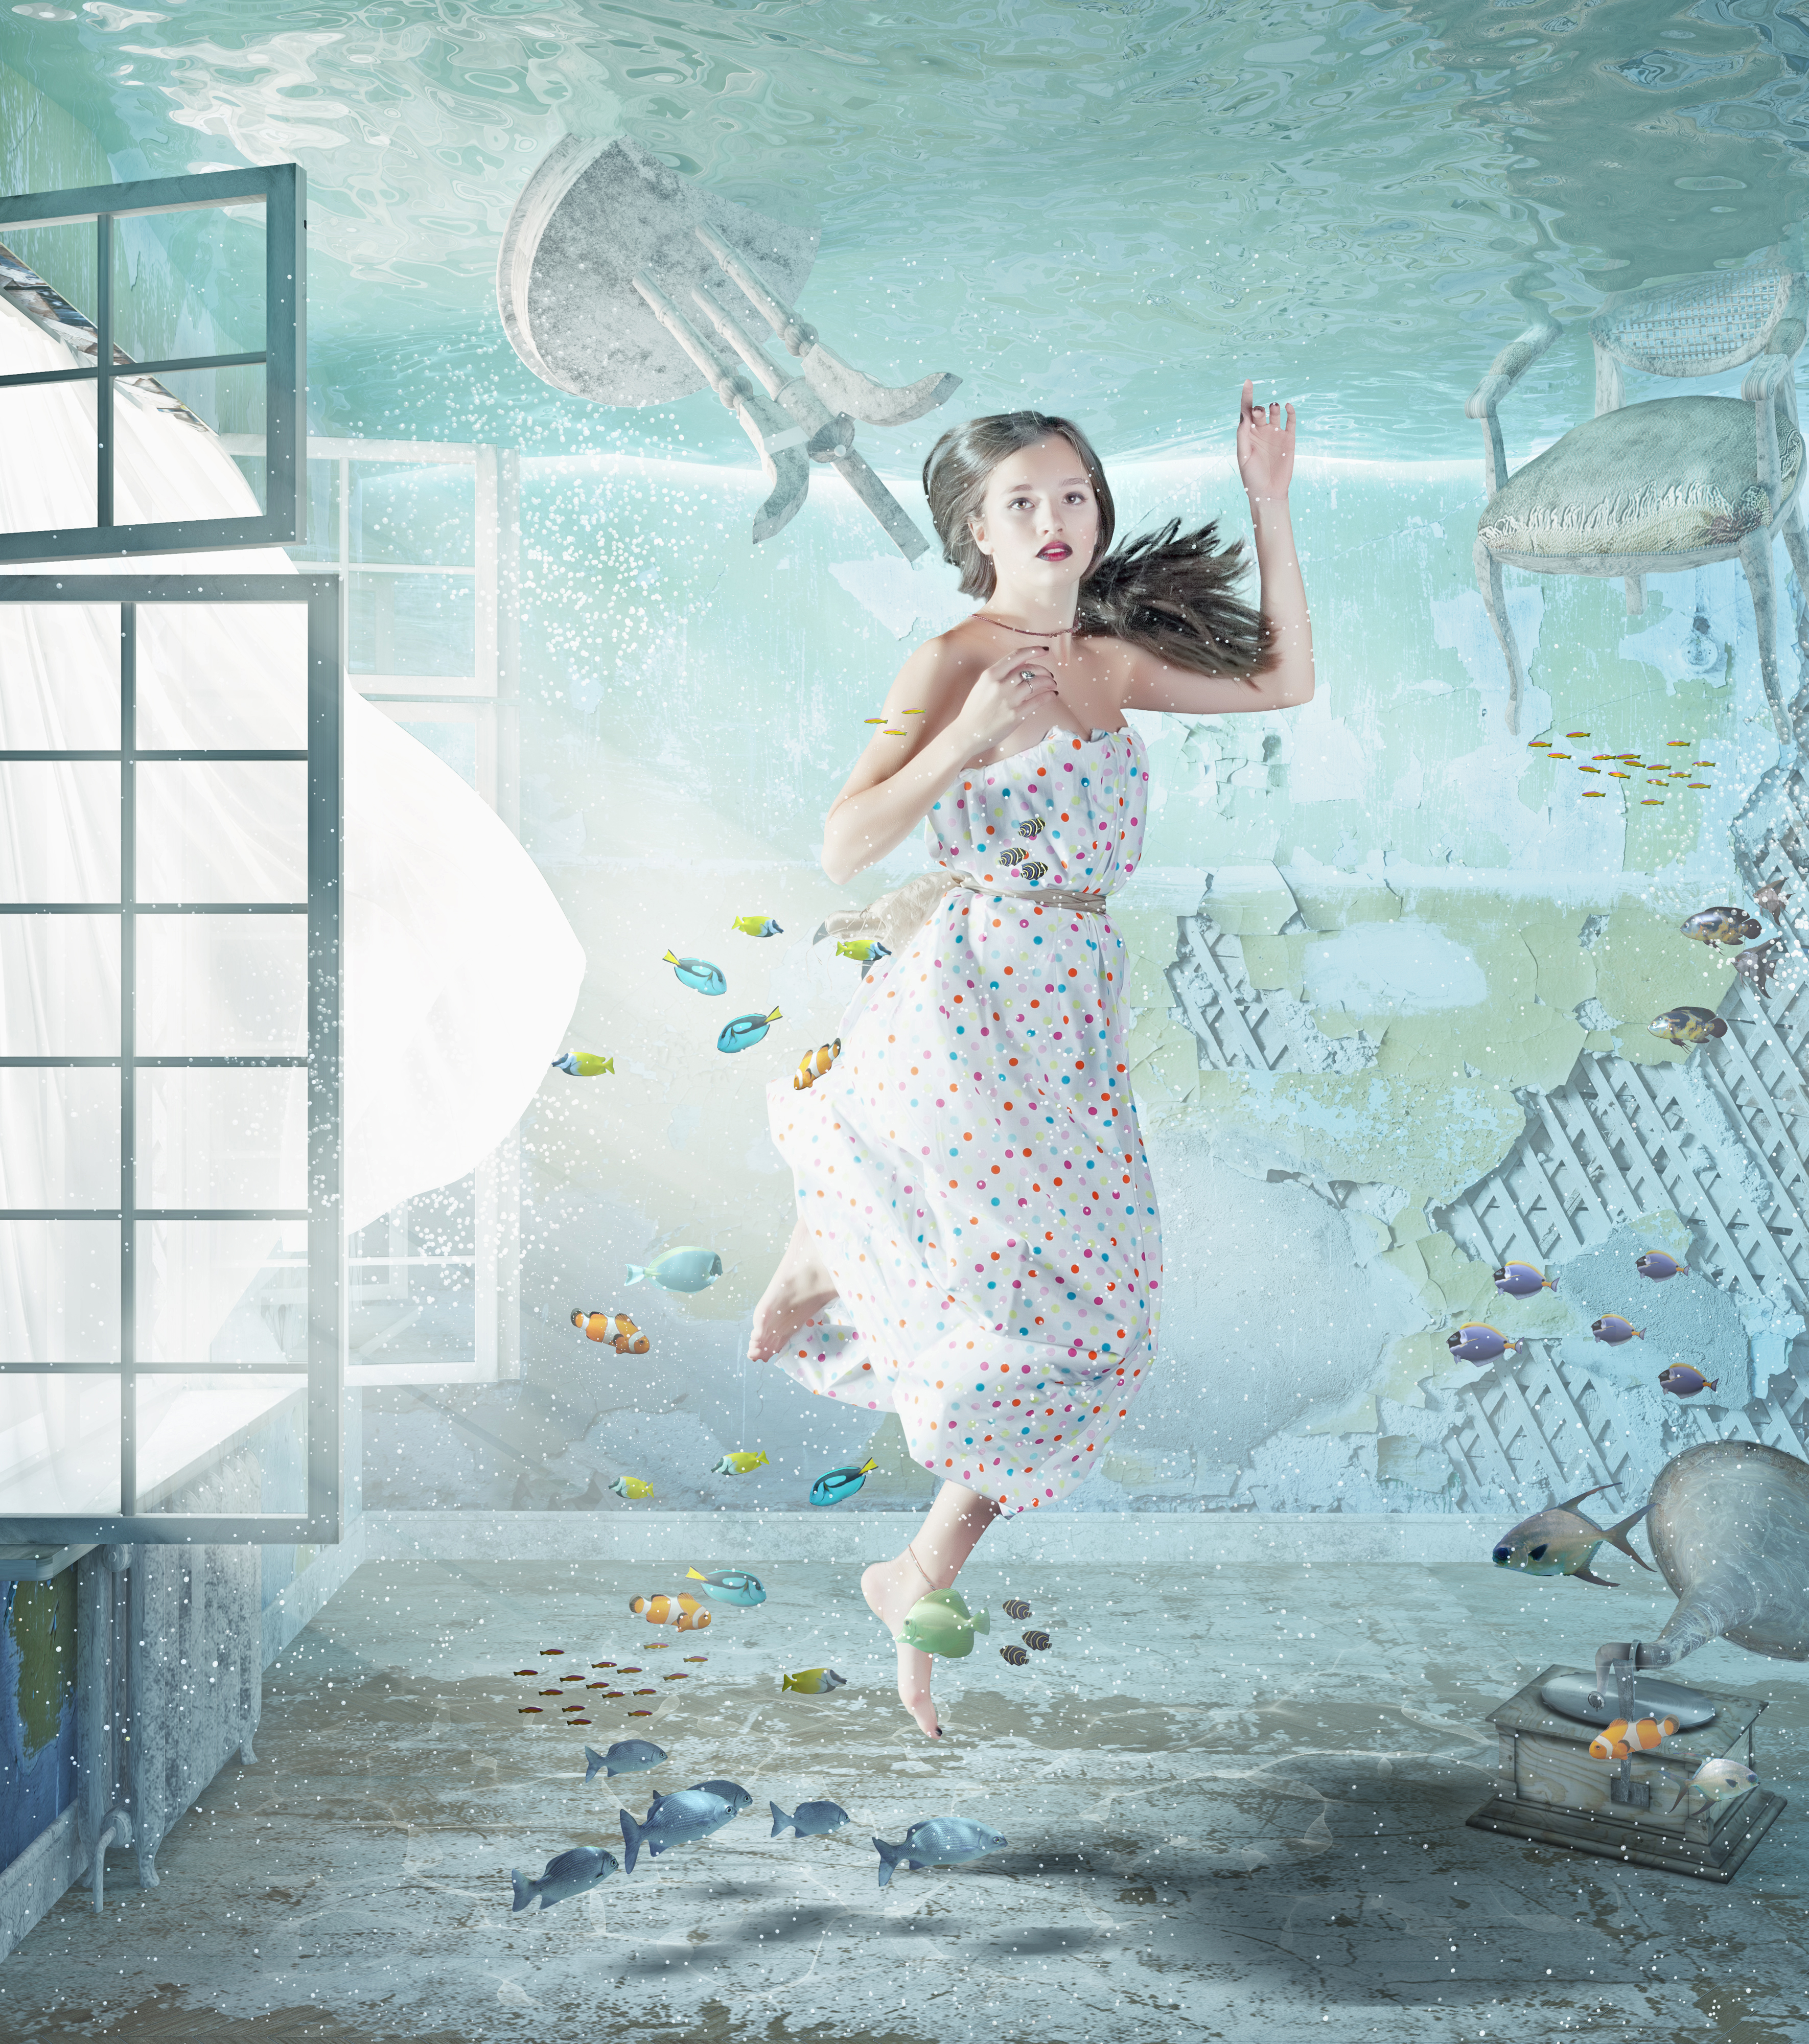 the young beautiful girl underwater in the flooded interior. creative concept